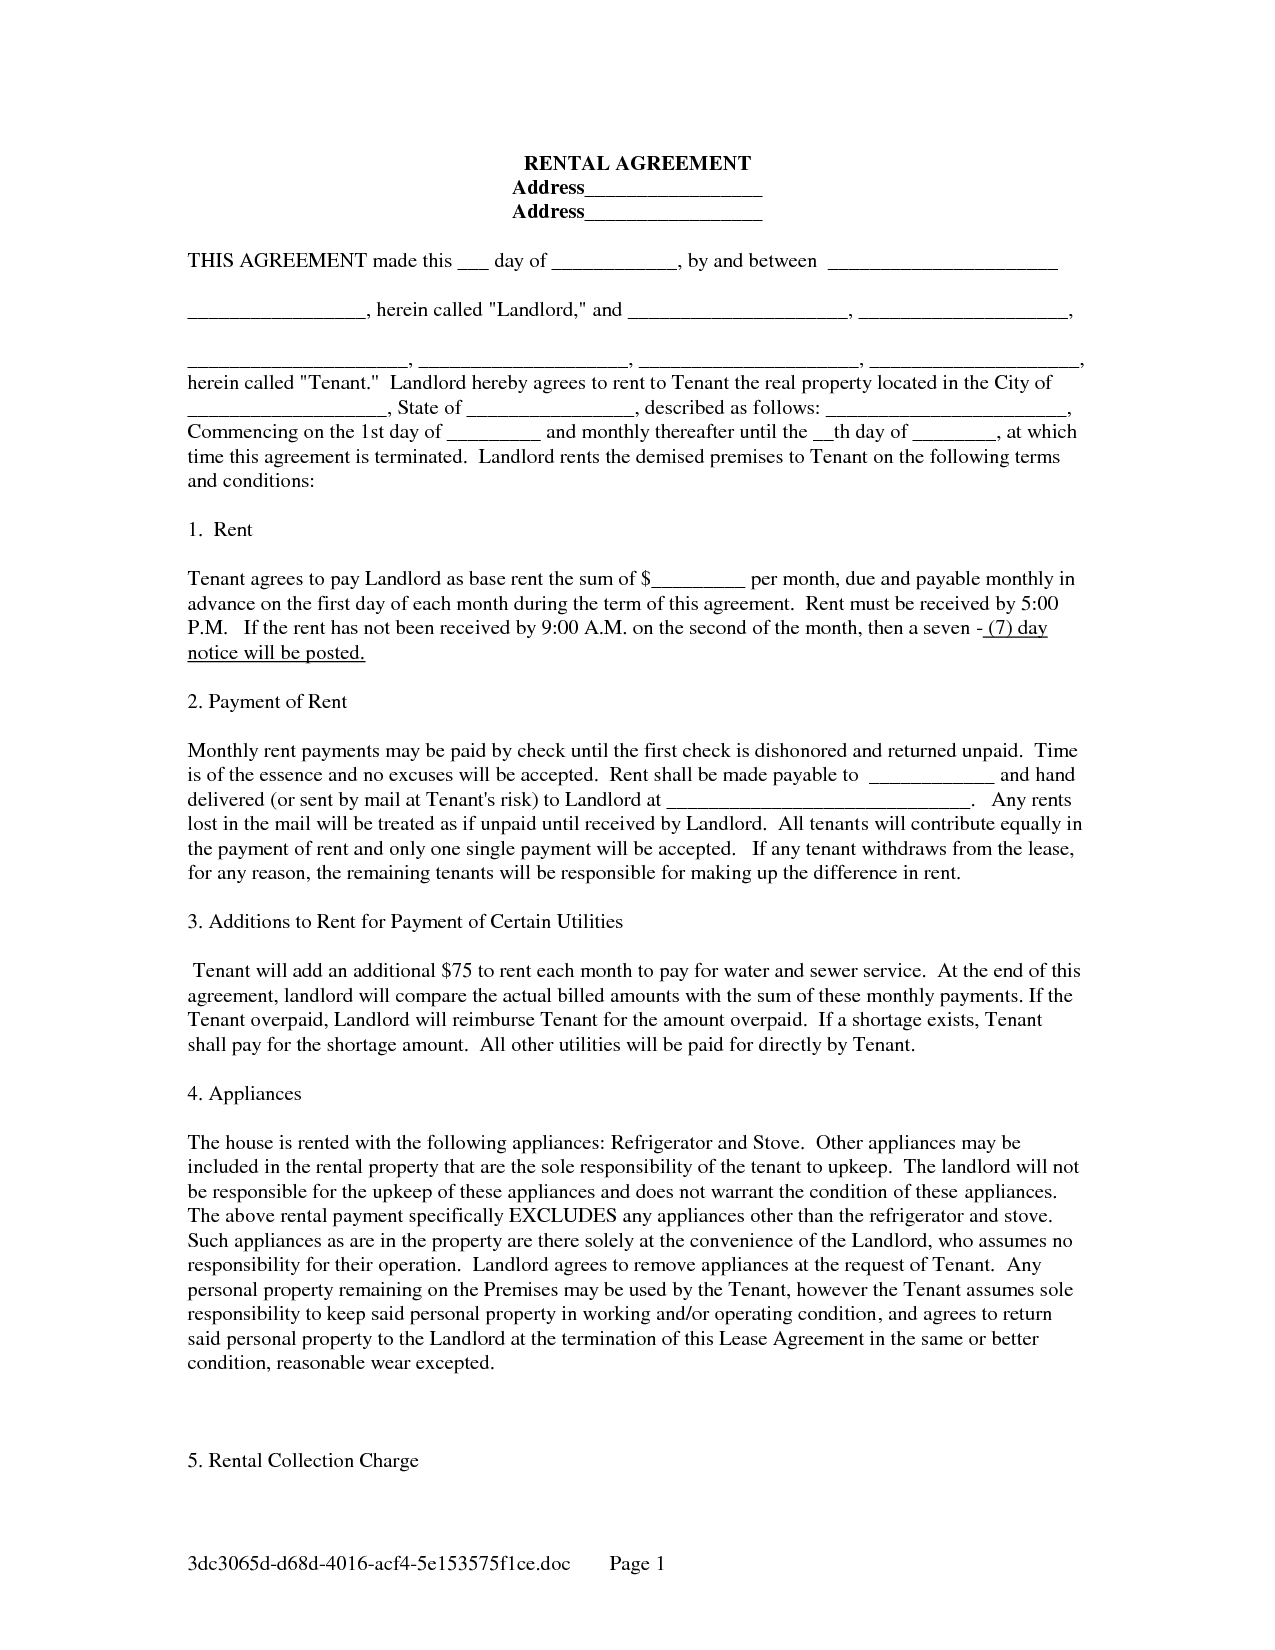 Property California Rental Agreement Template Free | Property - Free Printable California Residential Lease Agreement